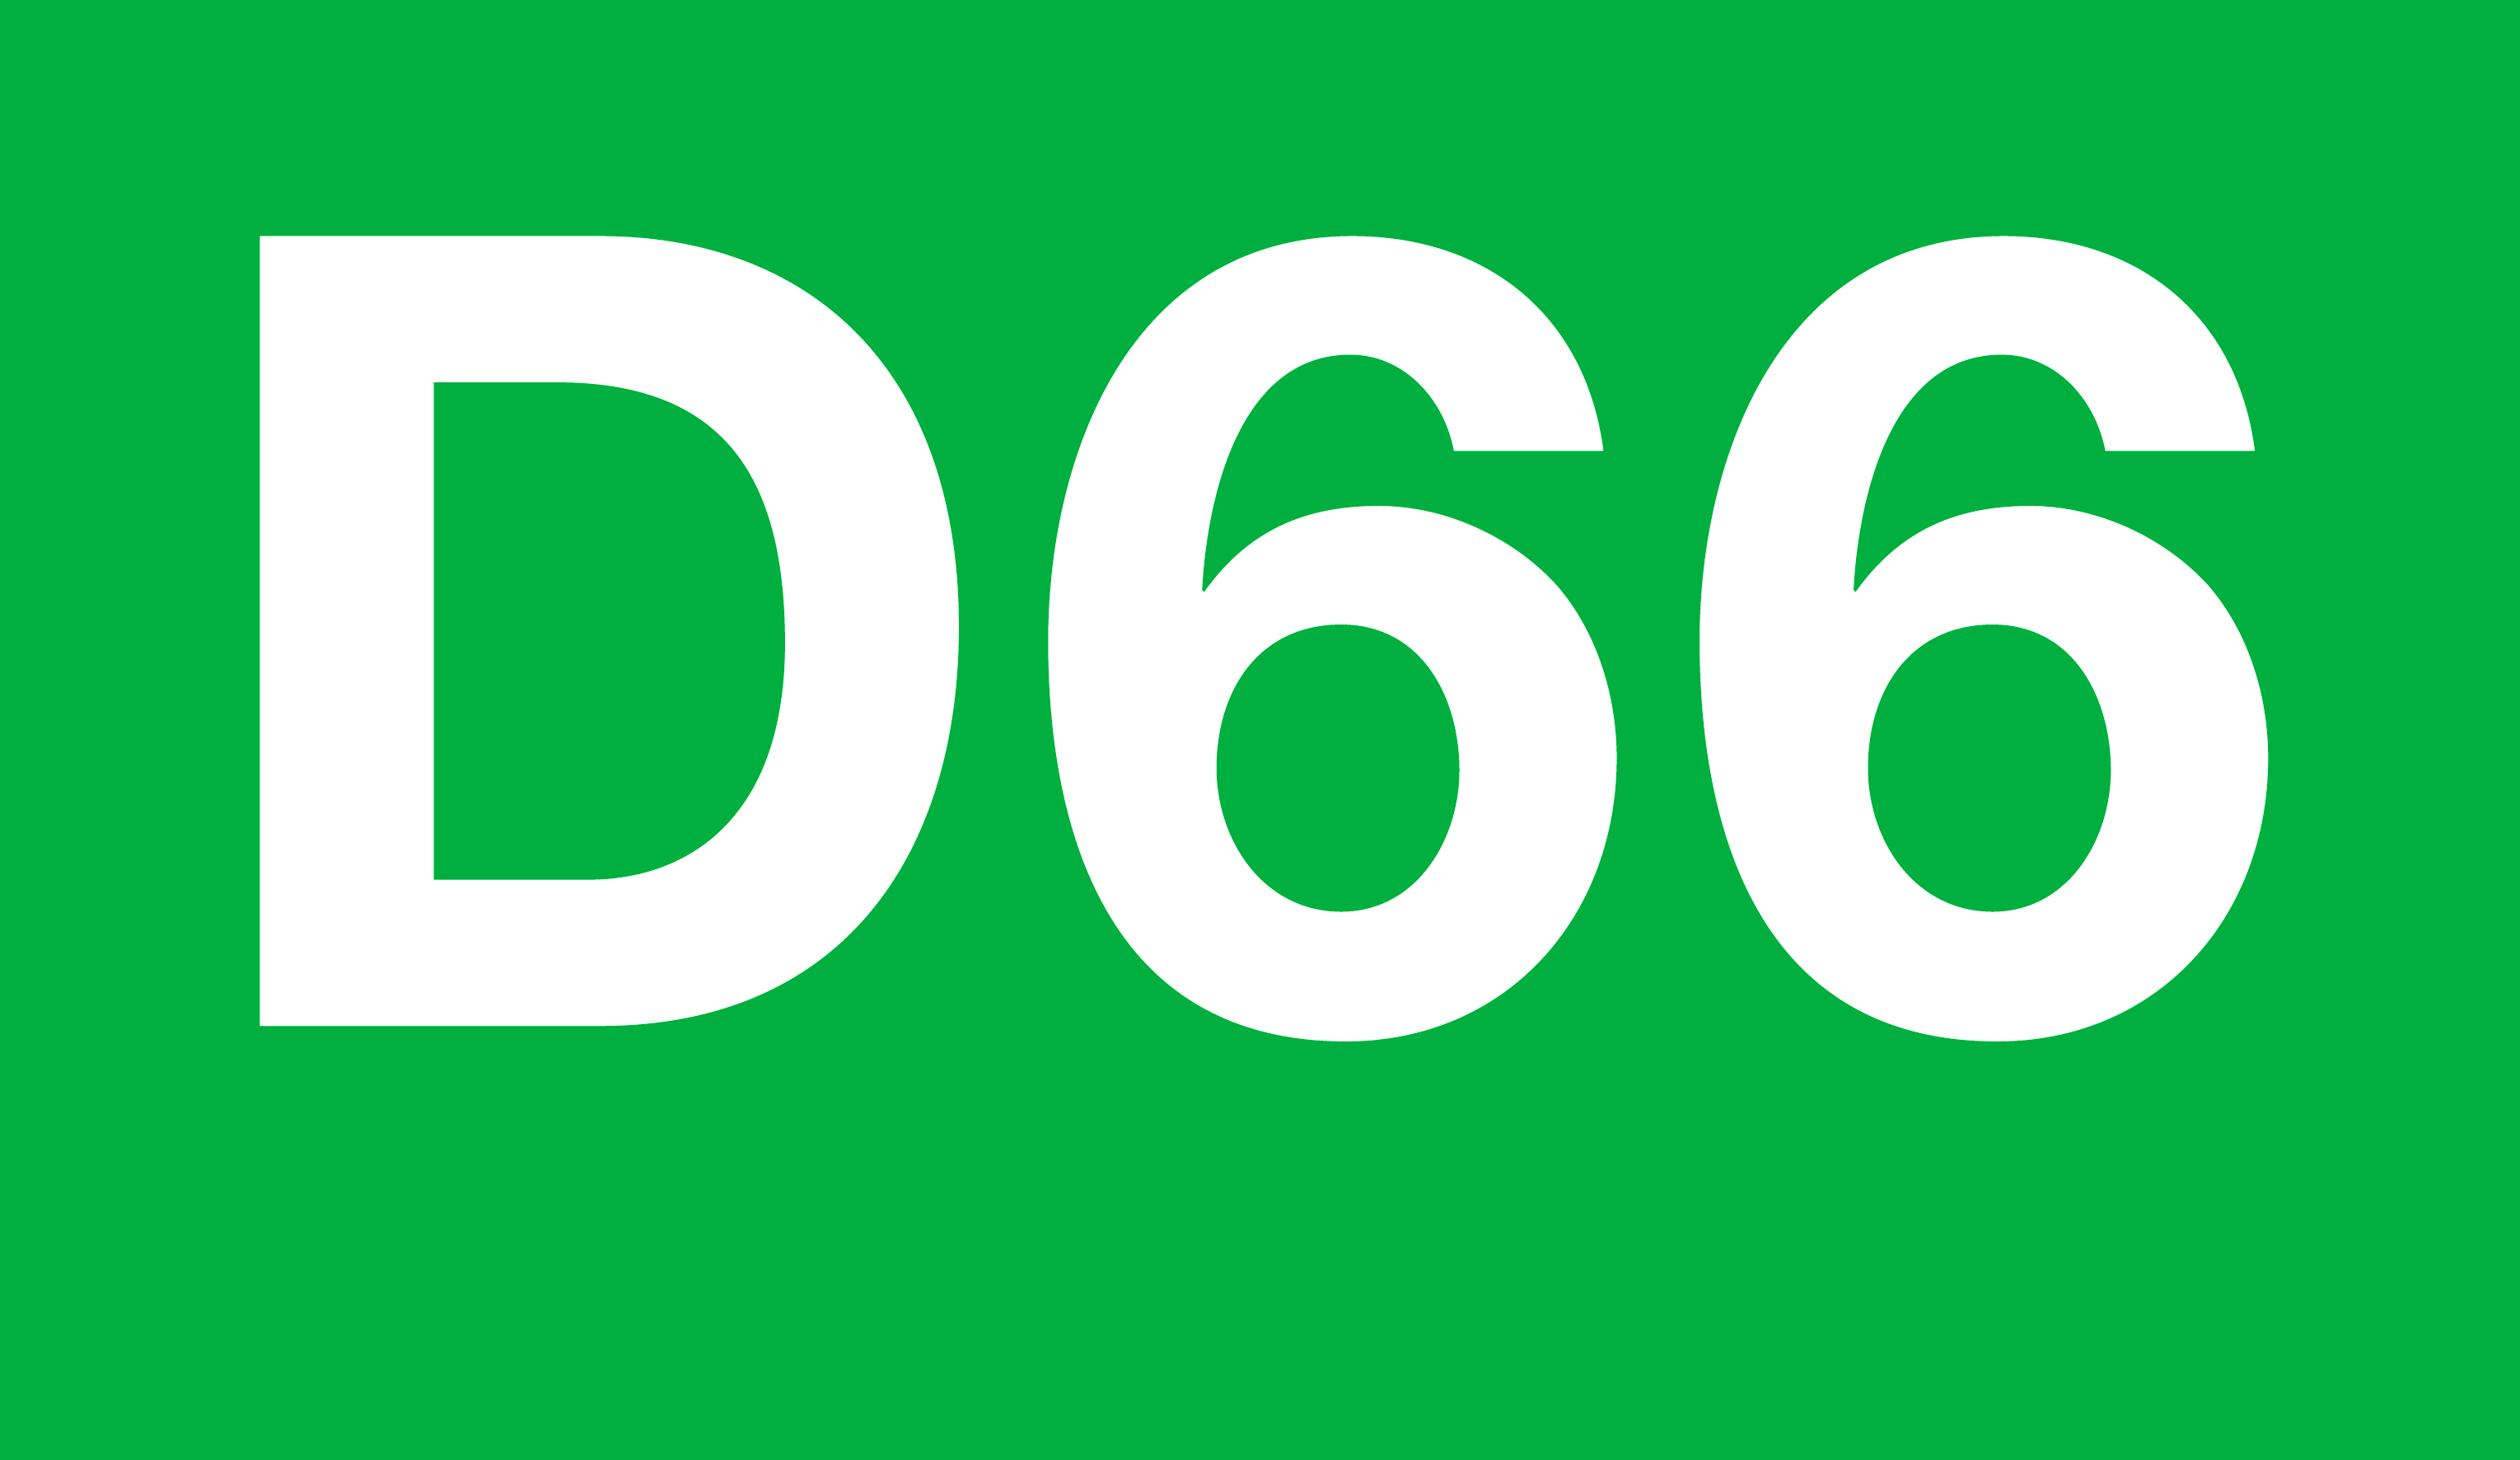 https://vlaardingen.d66.nl/content/uploads/sites/255/2014/01/logo1.jpg